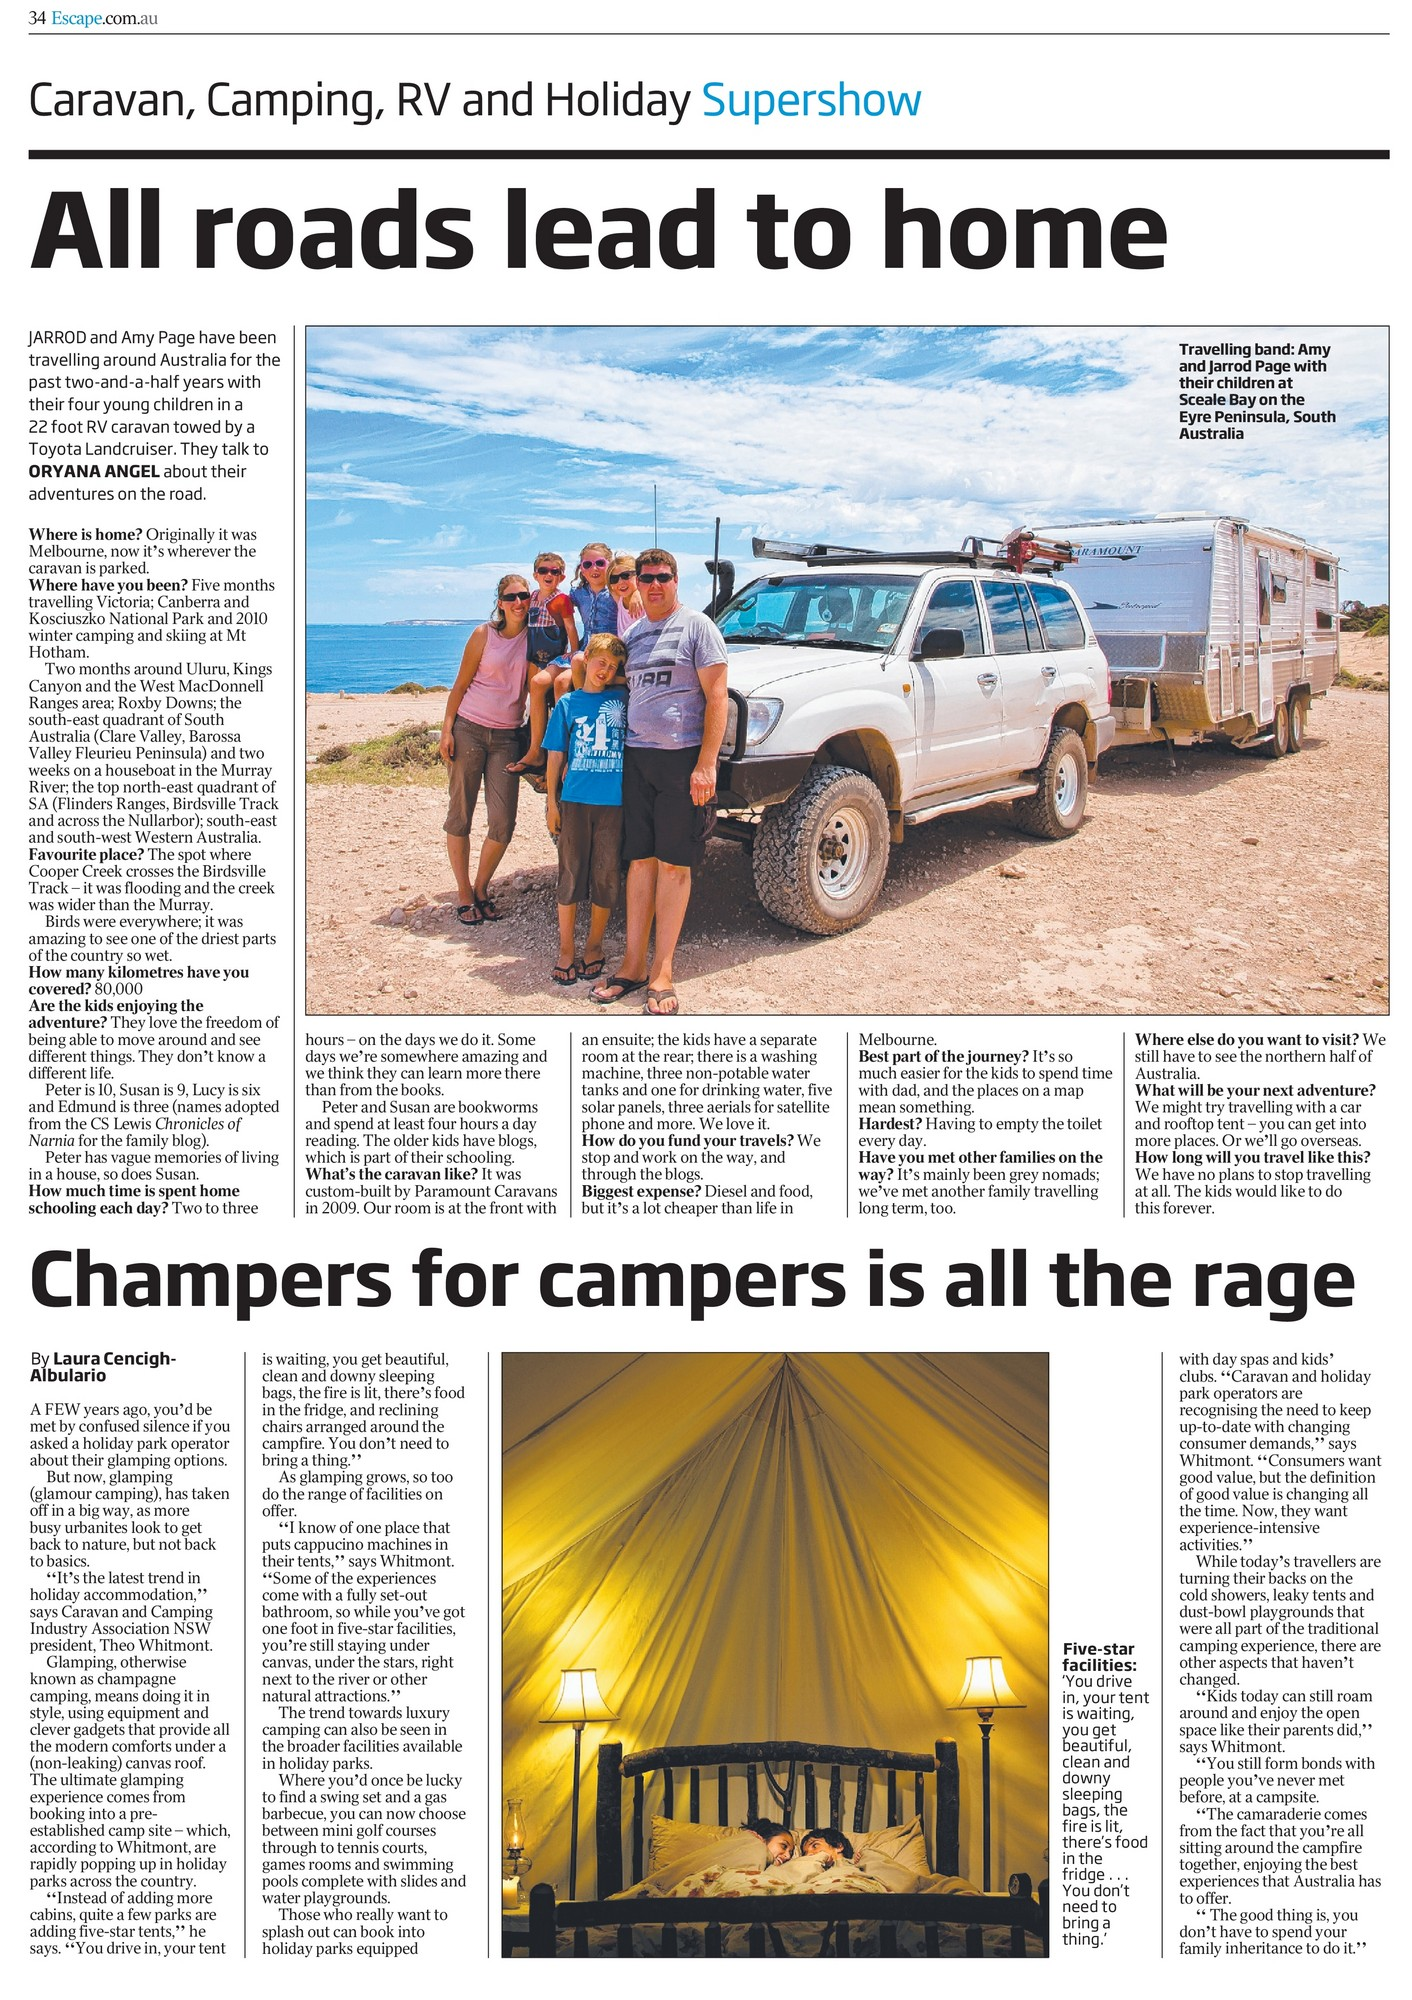 JARROD and Amy Page have been travelling around Australia for the past two-and-a-half years with their four young children in a 22 foot RV caravan towed by a Toyota Landcruiser. They talk to ORYANA ANGEL about their adventures on the road.